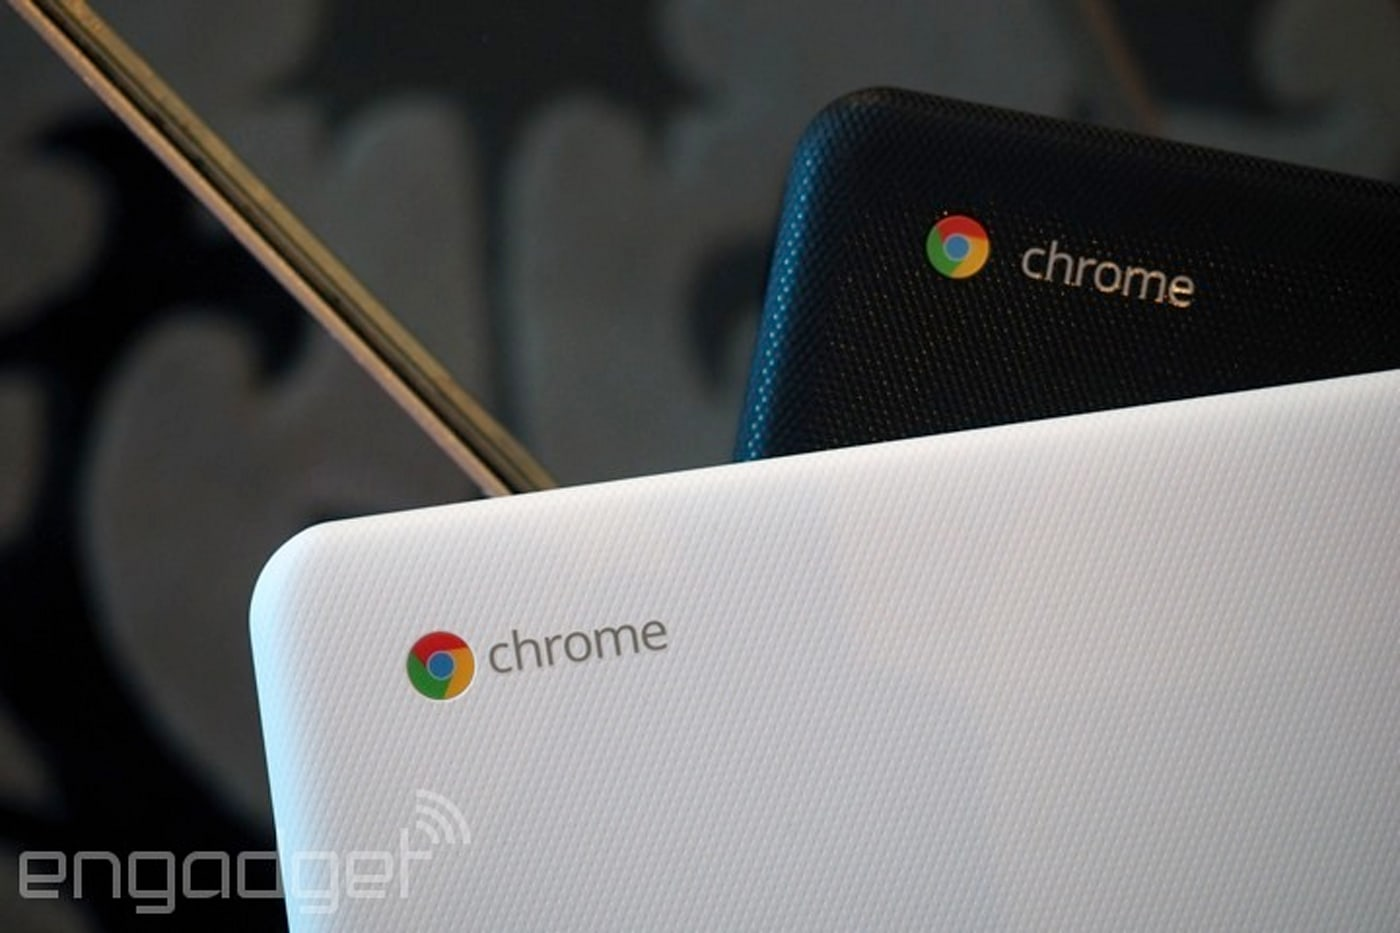 Chromebooks beat Mac sales in early 2016